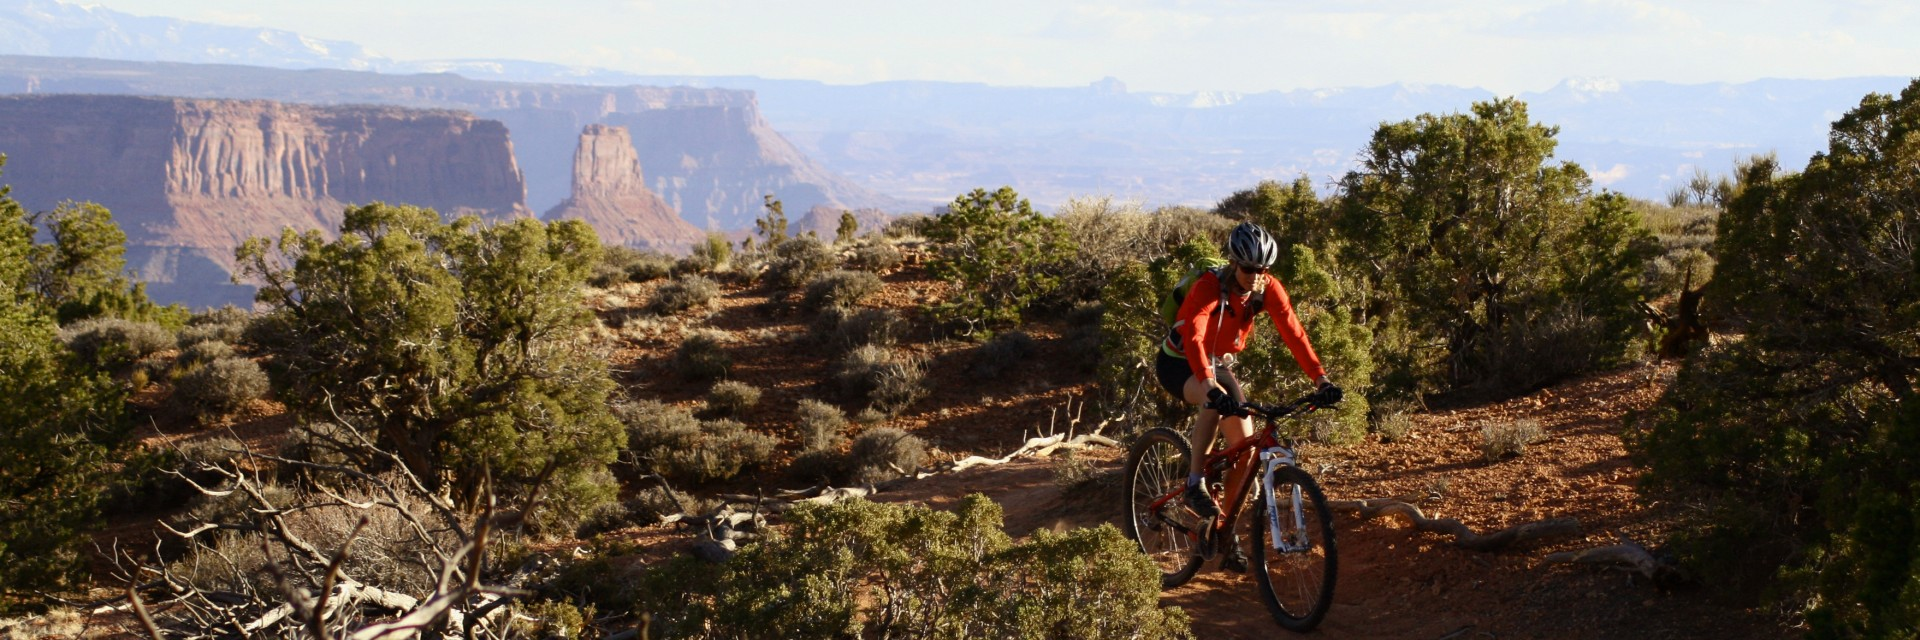 Dead Horse Point singletrack above the Colorado River erosion basin